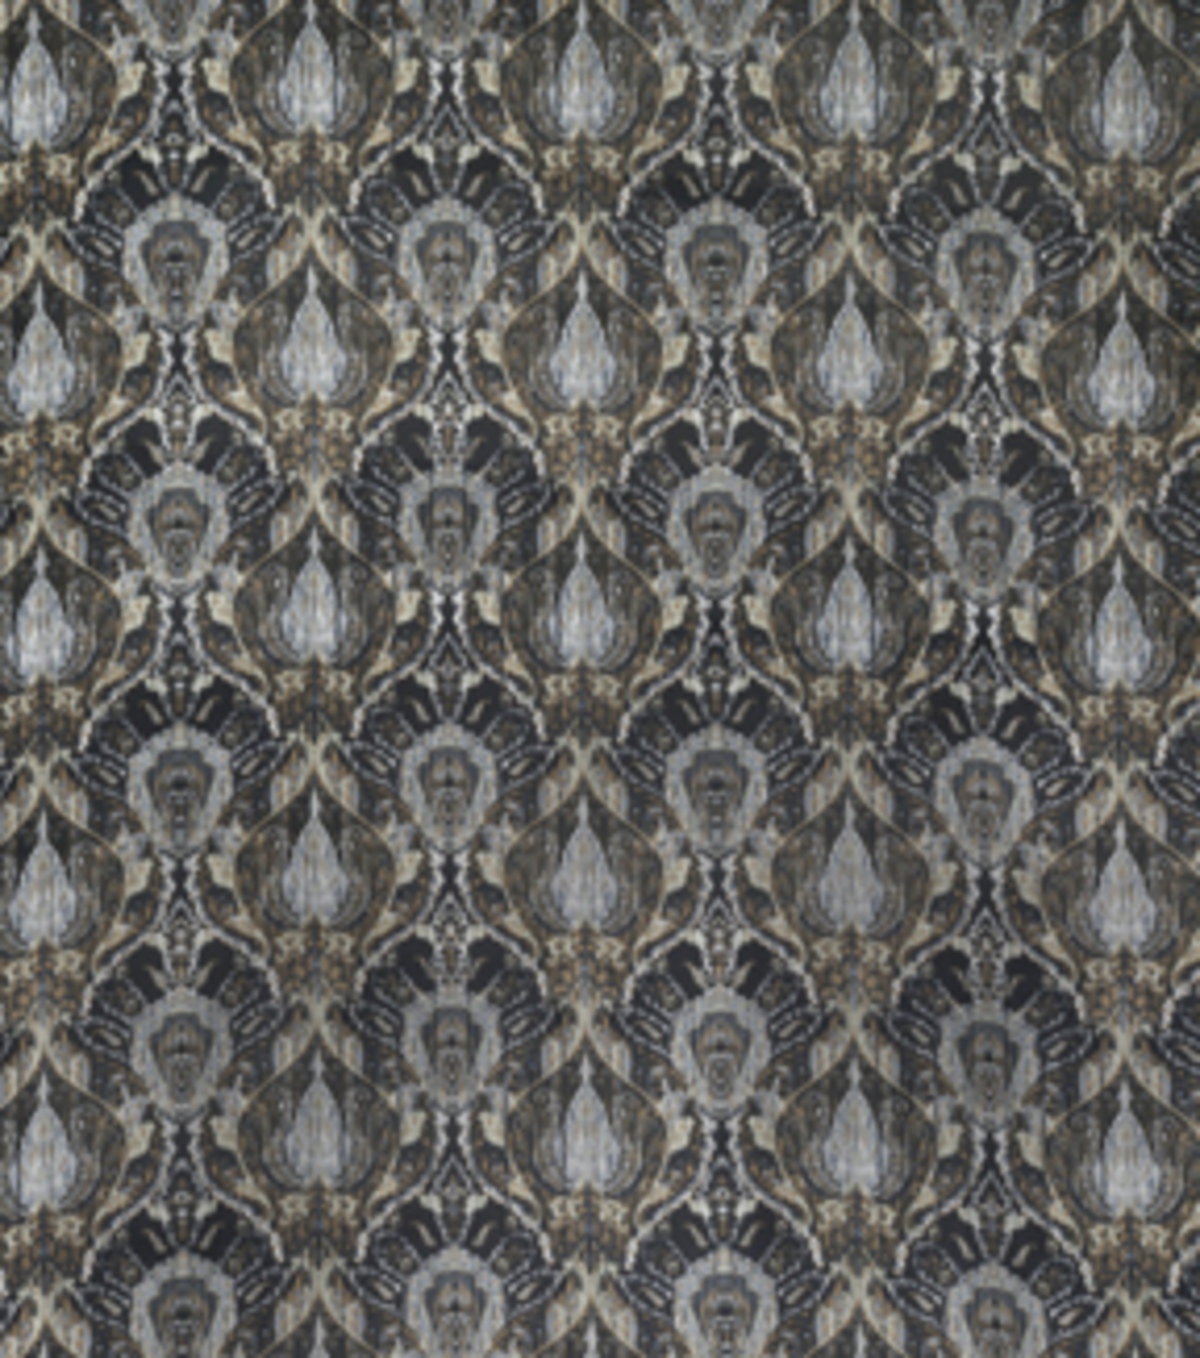 Home Decor 8\u0022x8\u0022 Fabric Swatch-Print Fabric Eaton Square Cartwheel Black